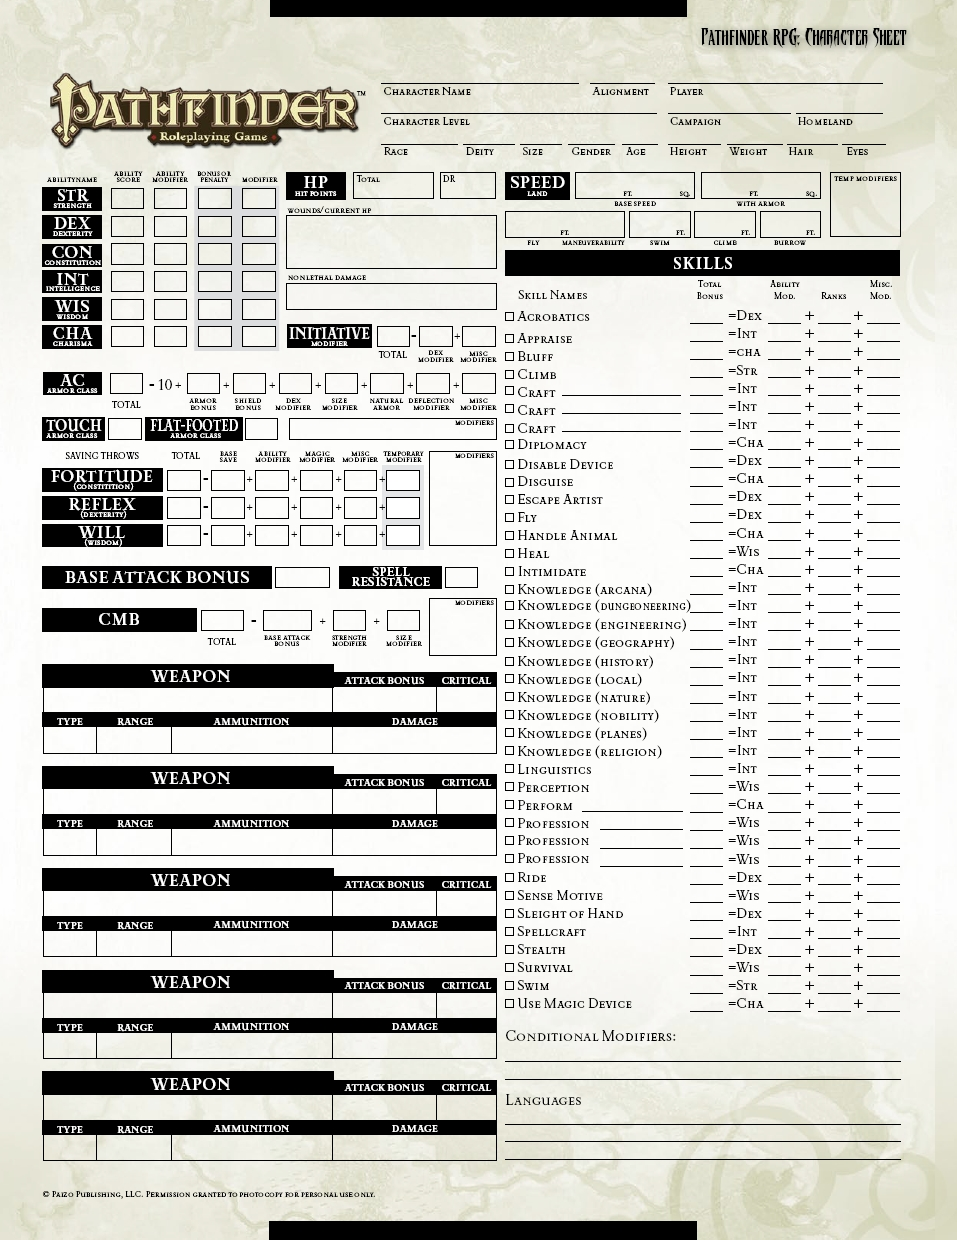 Smart image with printable pathfinder character sheet